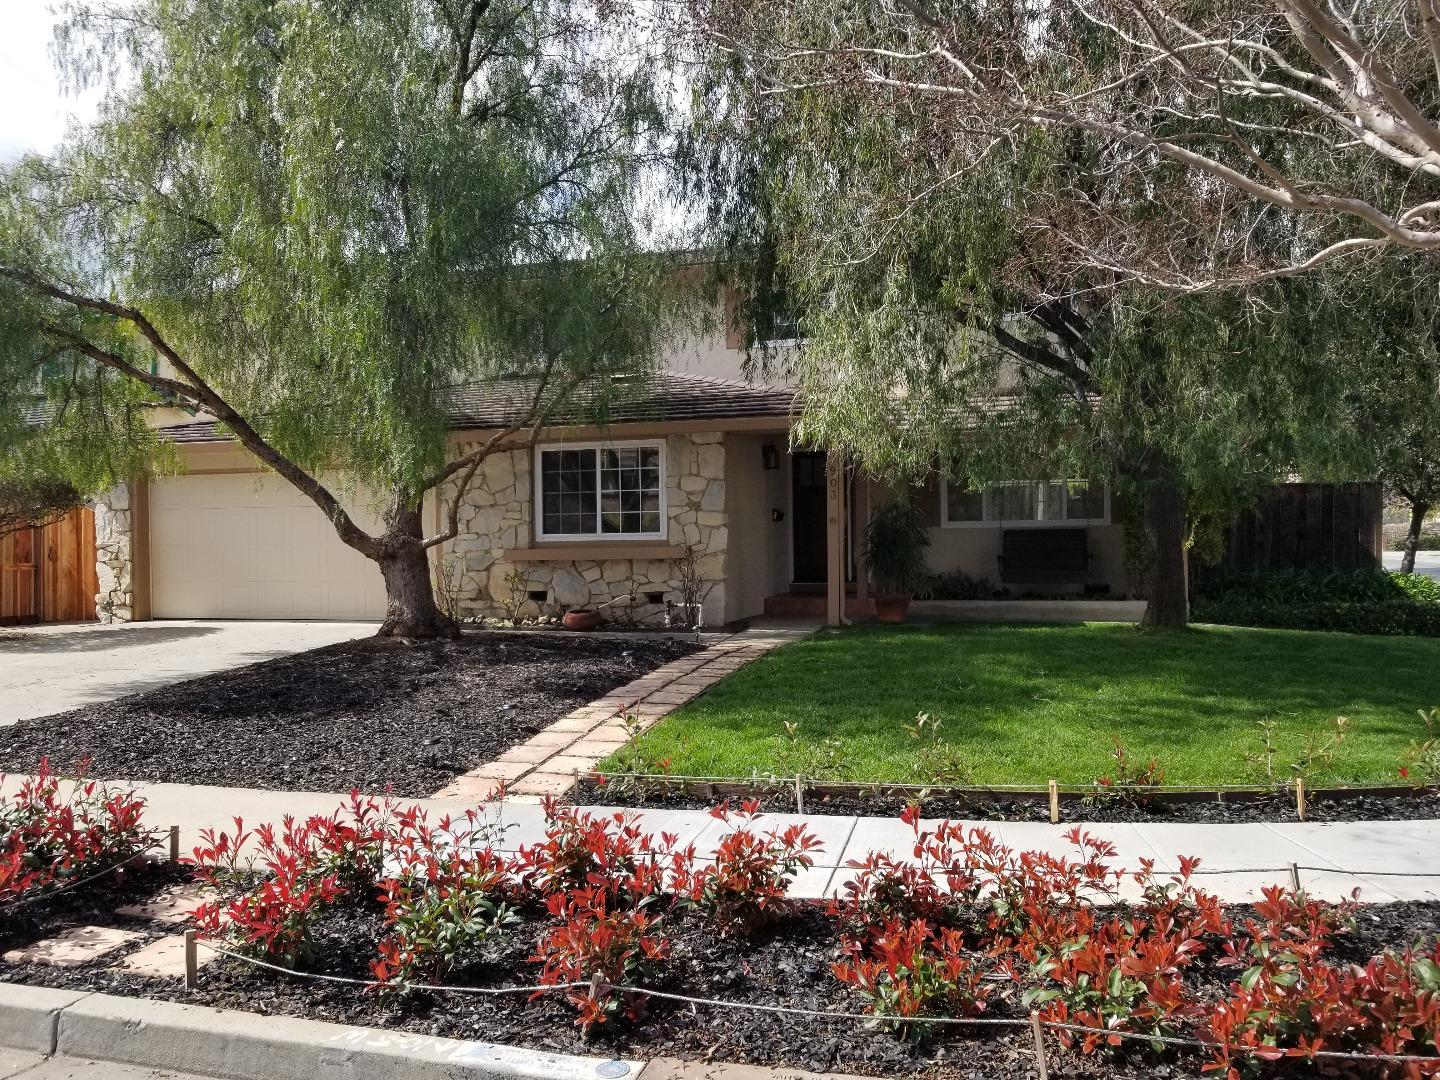 Single Family Home for Sale at 903 Old Town Court 903 Old Town Court Cupertino, California 95014 United States